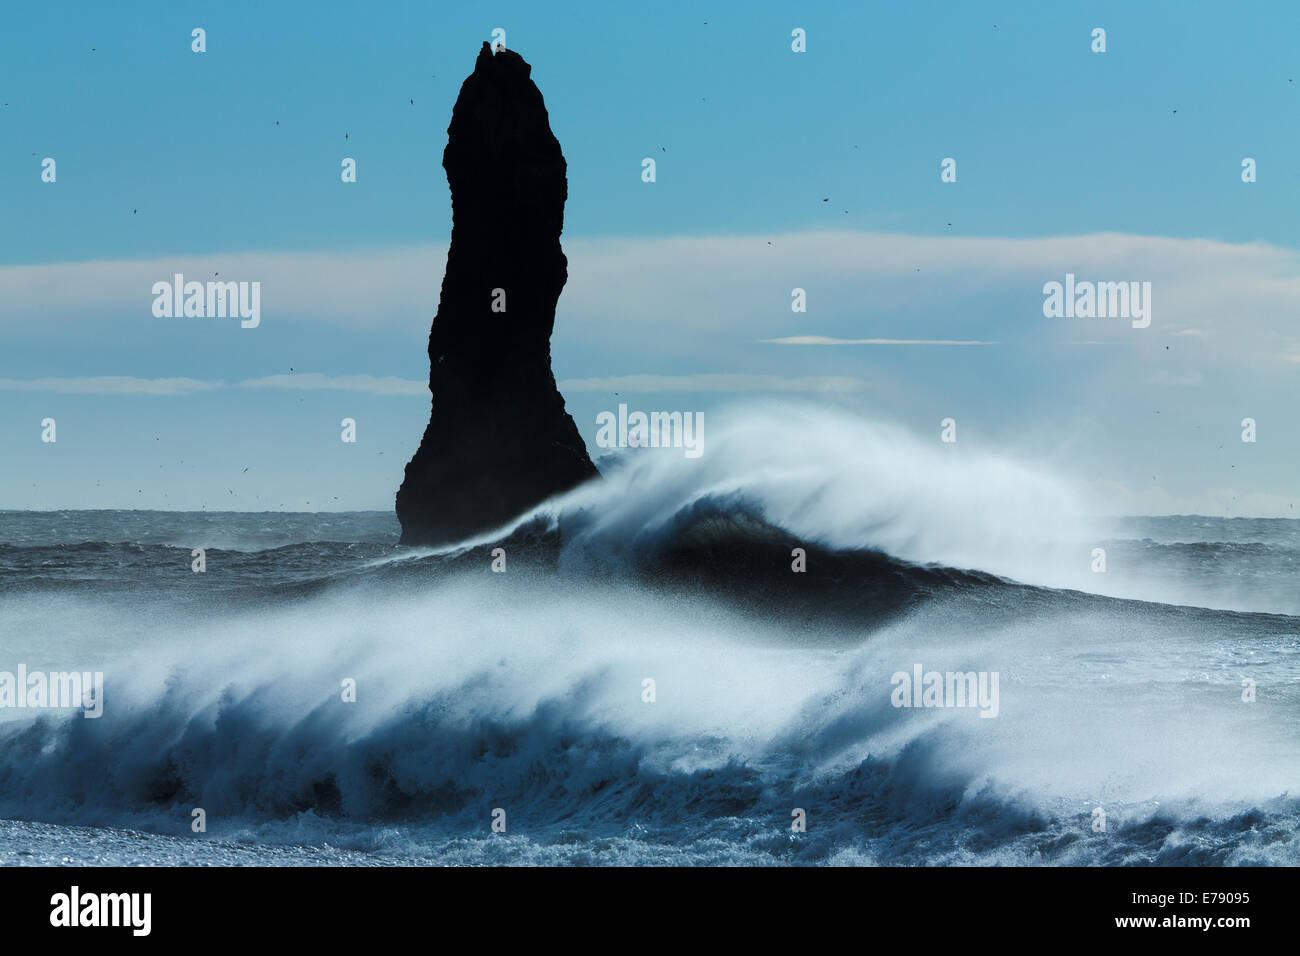 waves breaking on Renisfjara beach in front of the Reynisdrangar basalt sea stacks, southern Iceland - Stock Image